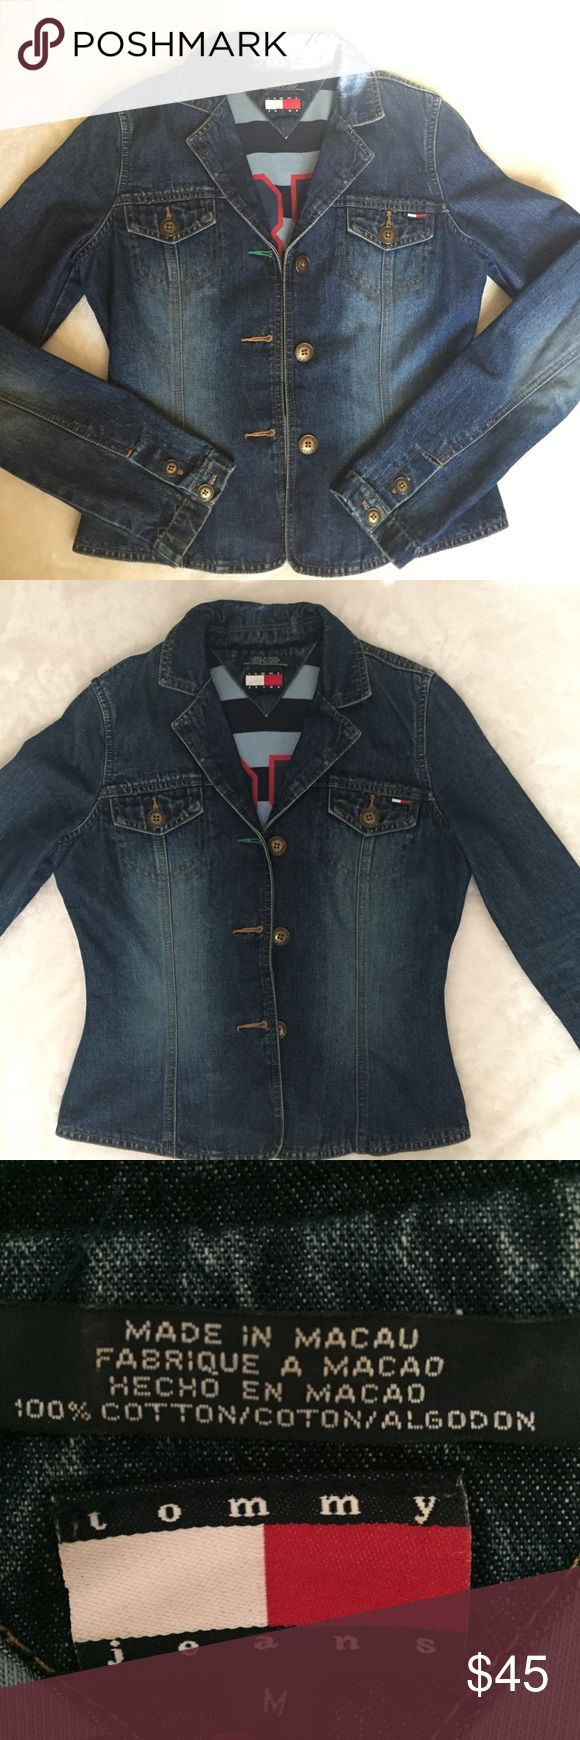 """Vintage Tommy Jean Denim Jacket Length: 20""""... Bottom Hem: 24.5""""... Shoulder:  14.4"""" Sleeve length: 24.5""""...  Says Medium but fits like a Small. Has 85 logo inside the jacket. Has a tiny stain shown in the 5th picture and also on the back as shown in 7th picture. Other than that this jacket is in good condition. Tommy Hilfiger Jackets & Coats Jean Jackets"""